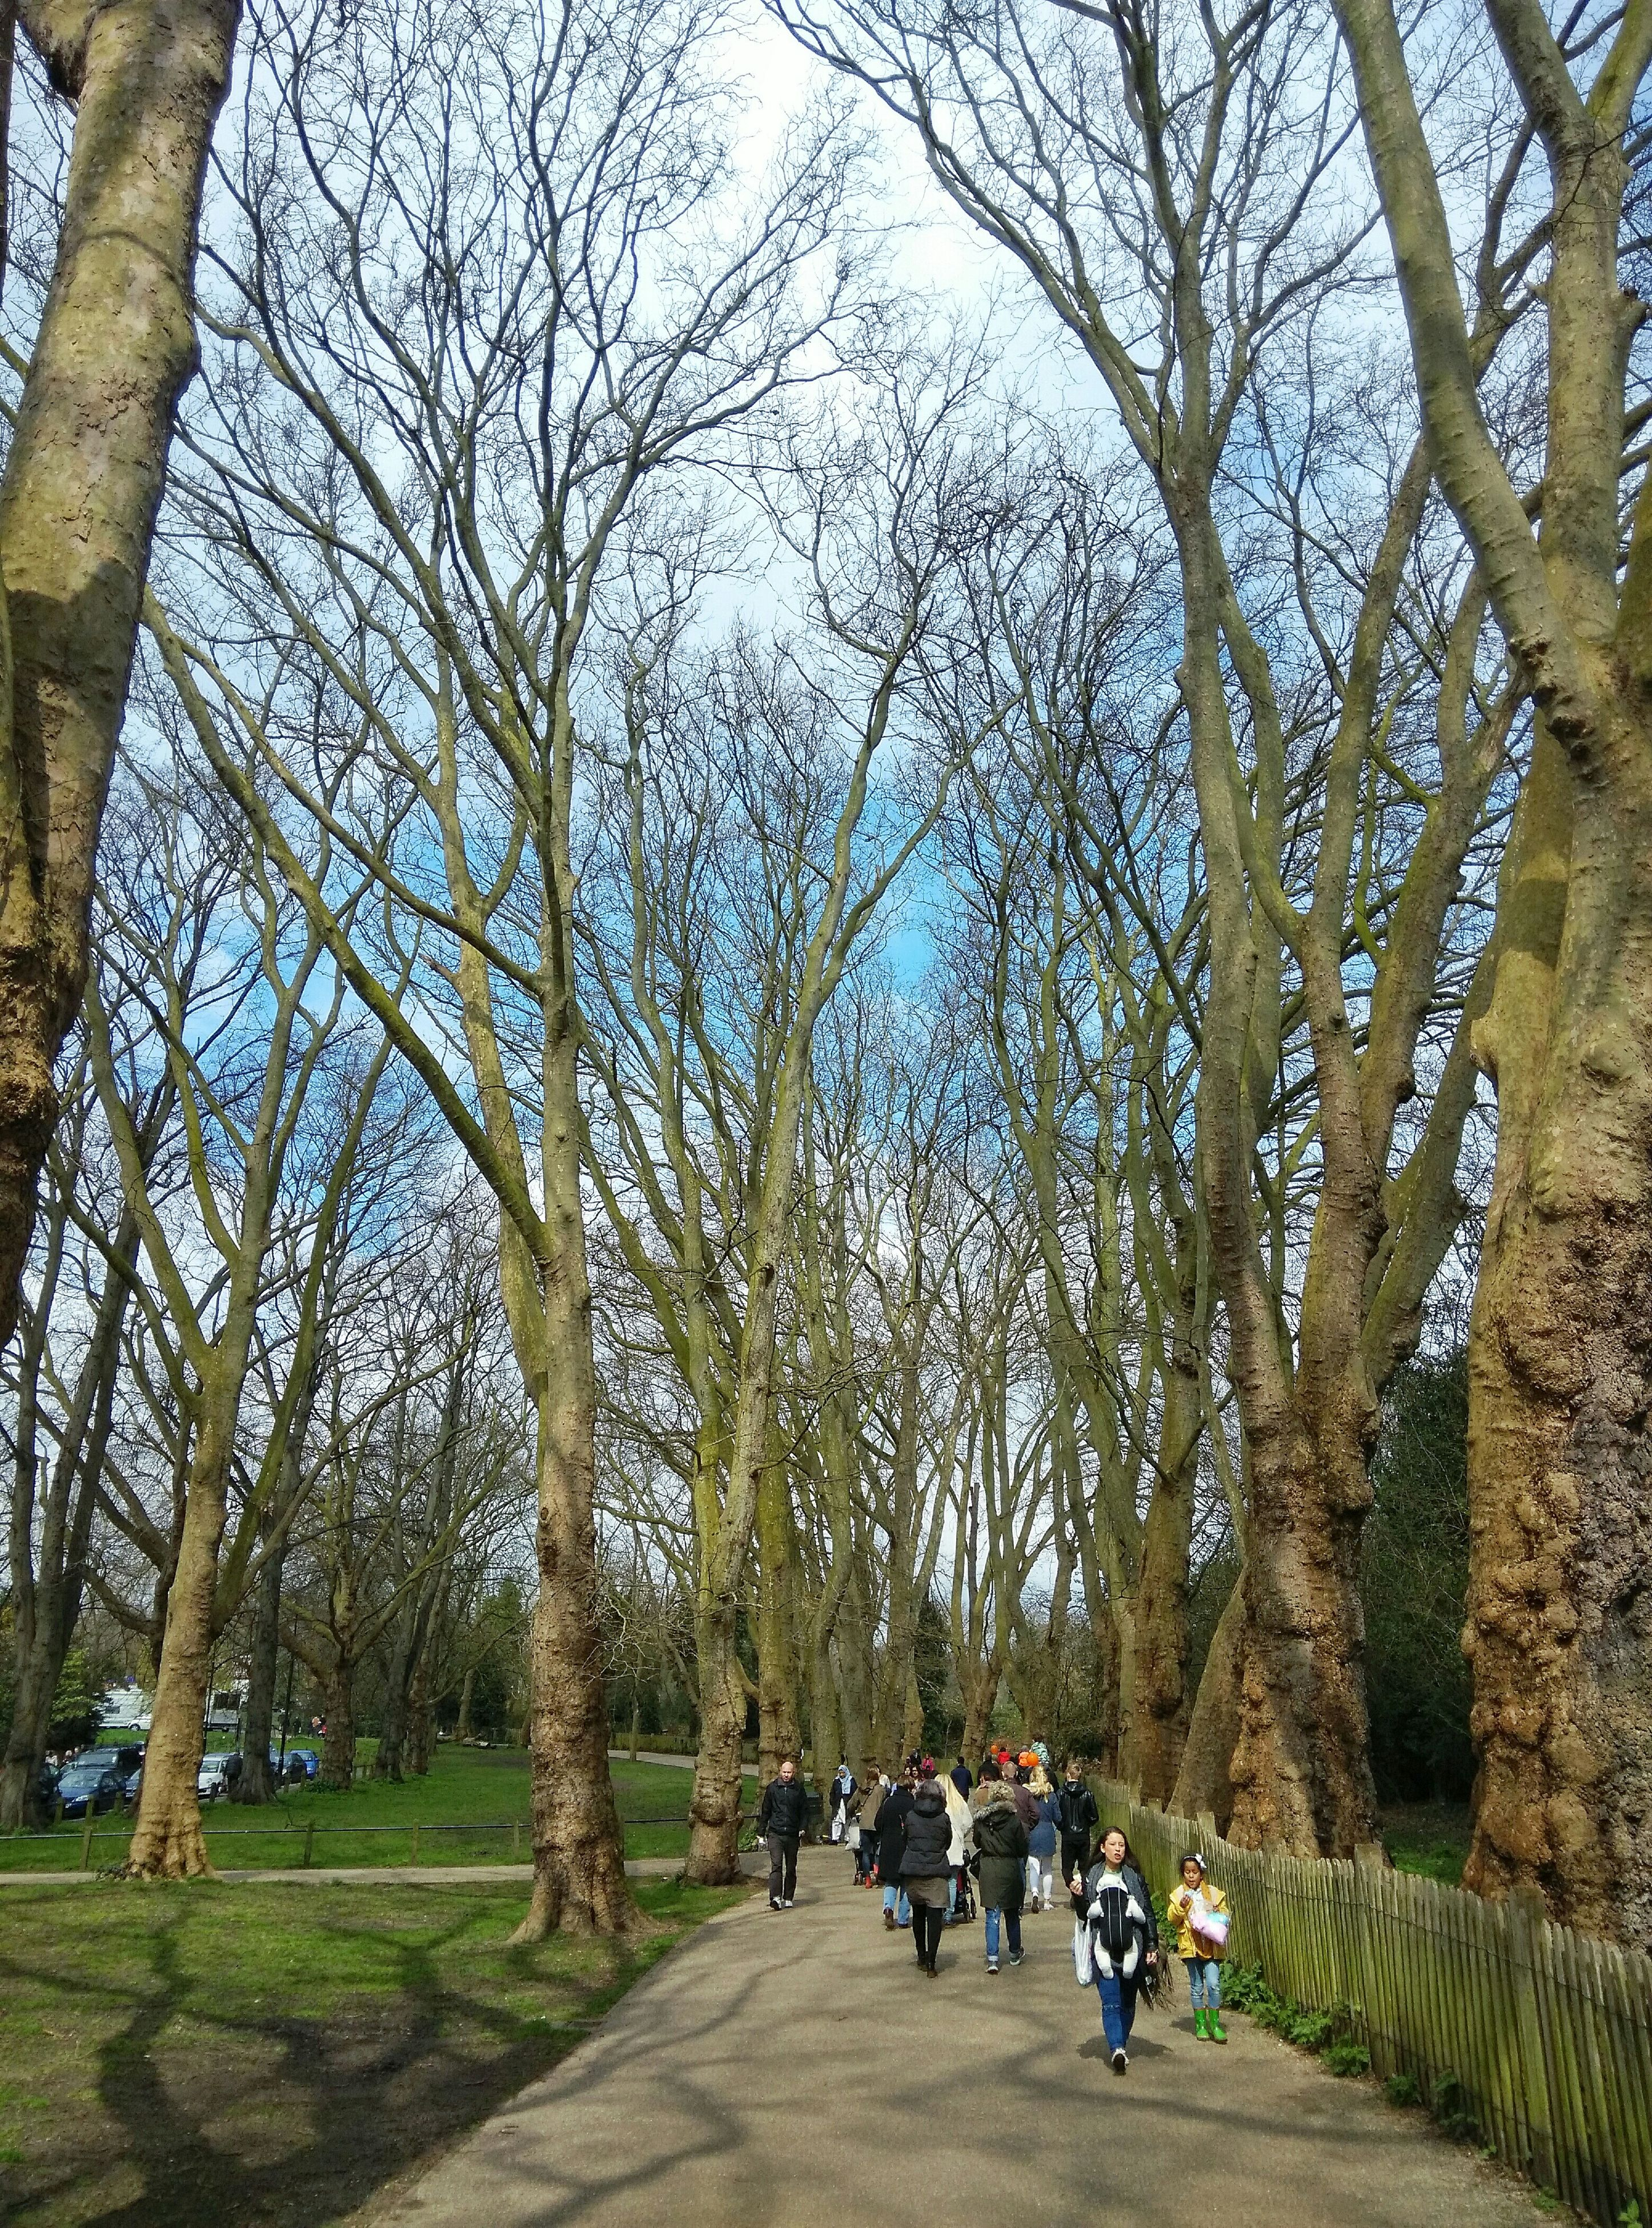 tree, men, lifestyles, person, leisure activity, large group of people, park - man made space, walking, tree trunk, togetherness, branch, the way forward, growth, rear view, group of people, sitting, footpath, medium group of people, full length